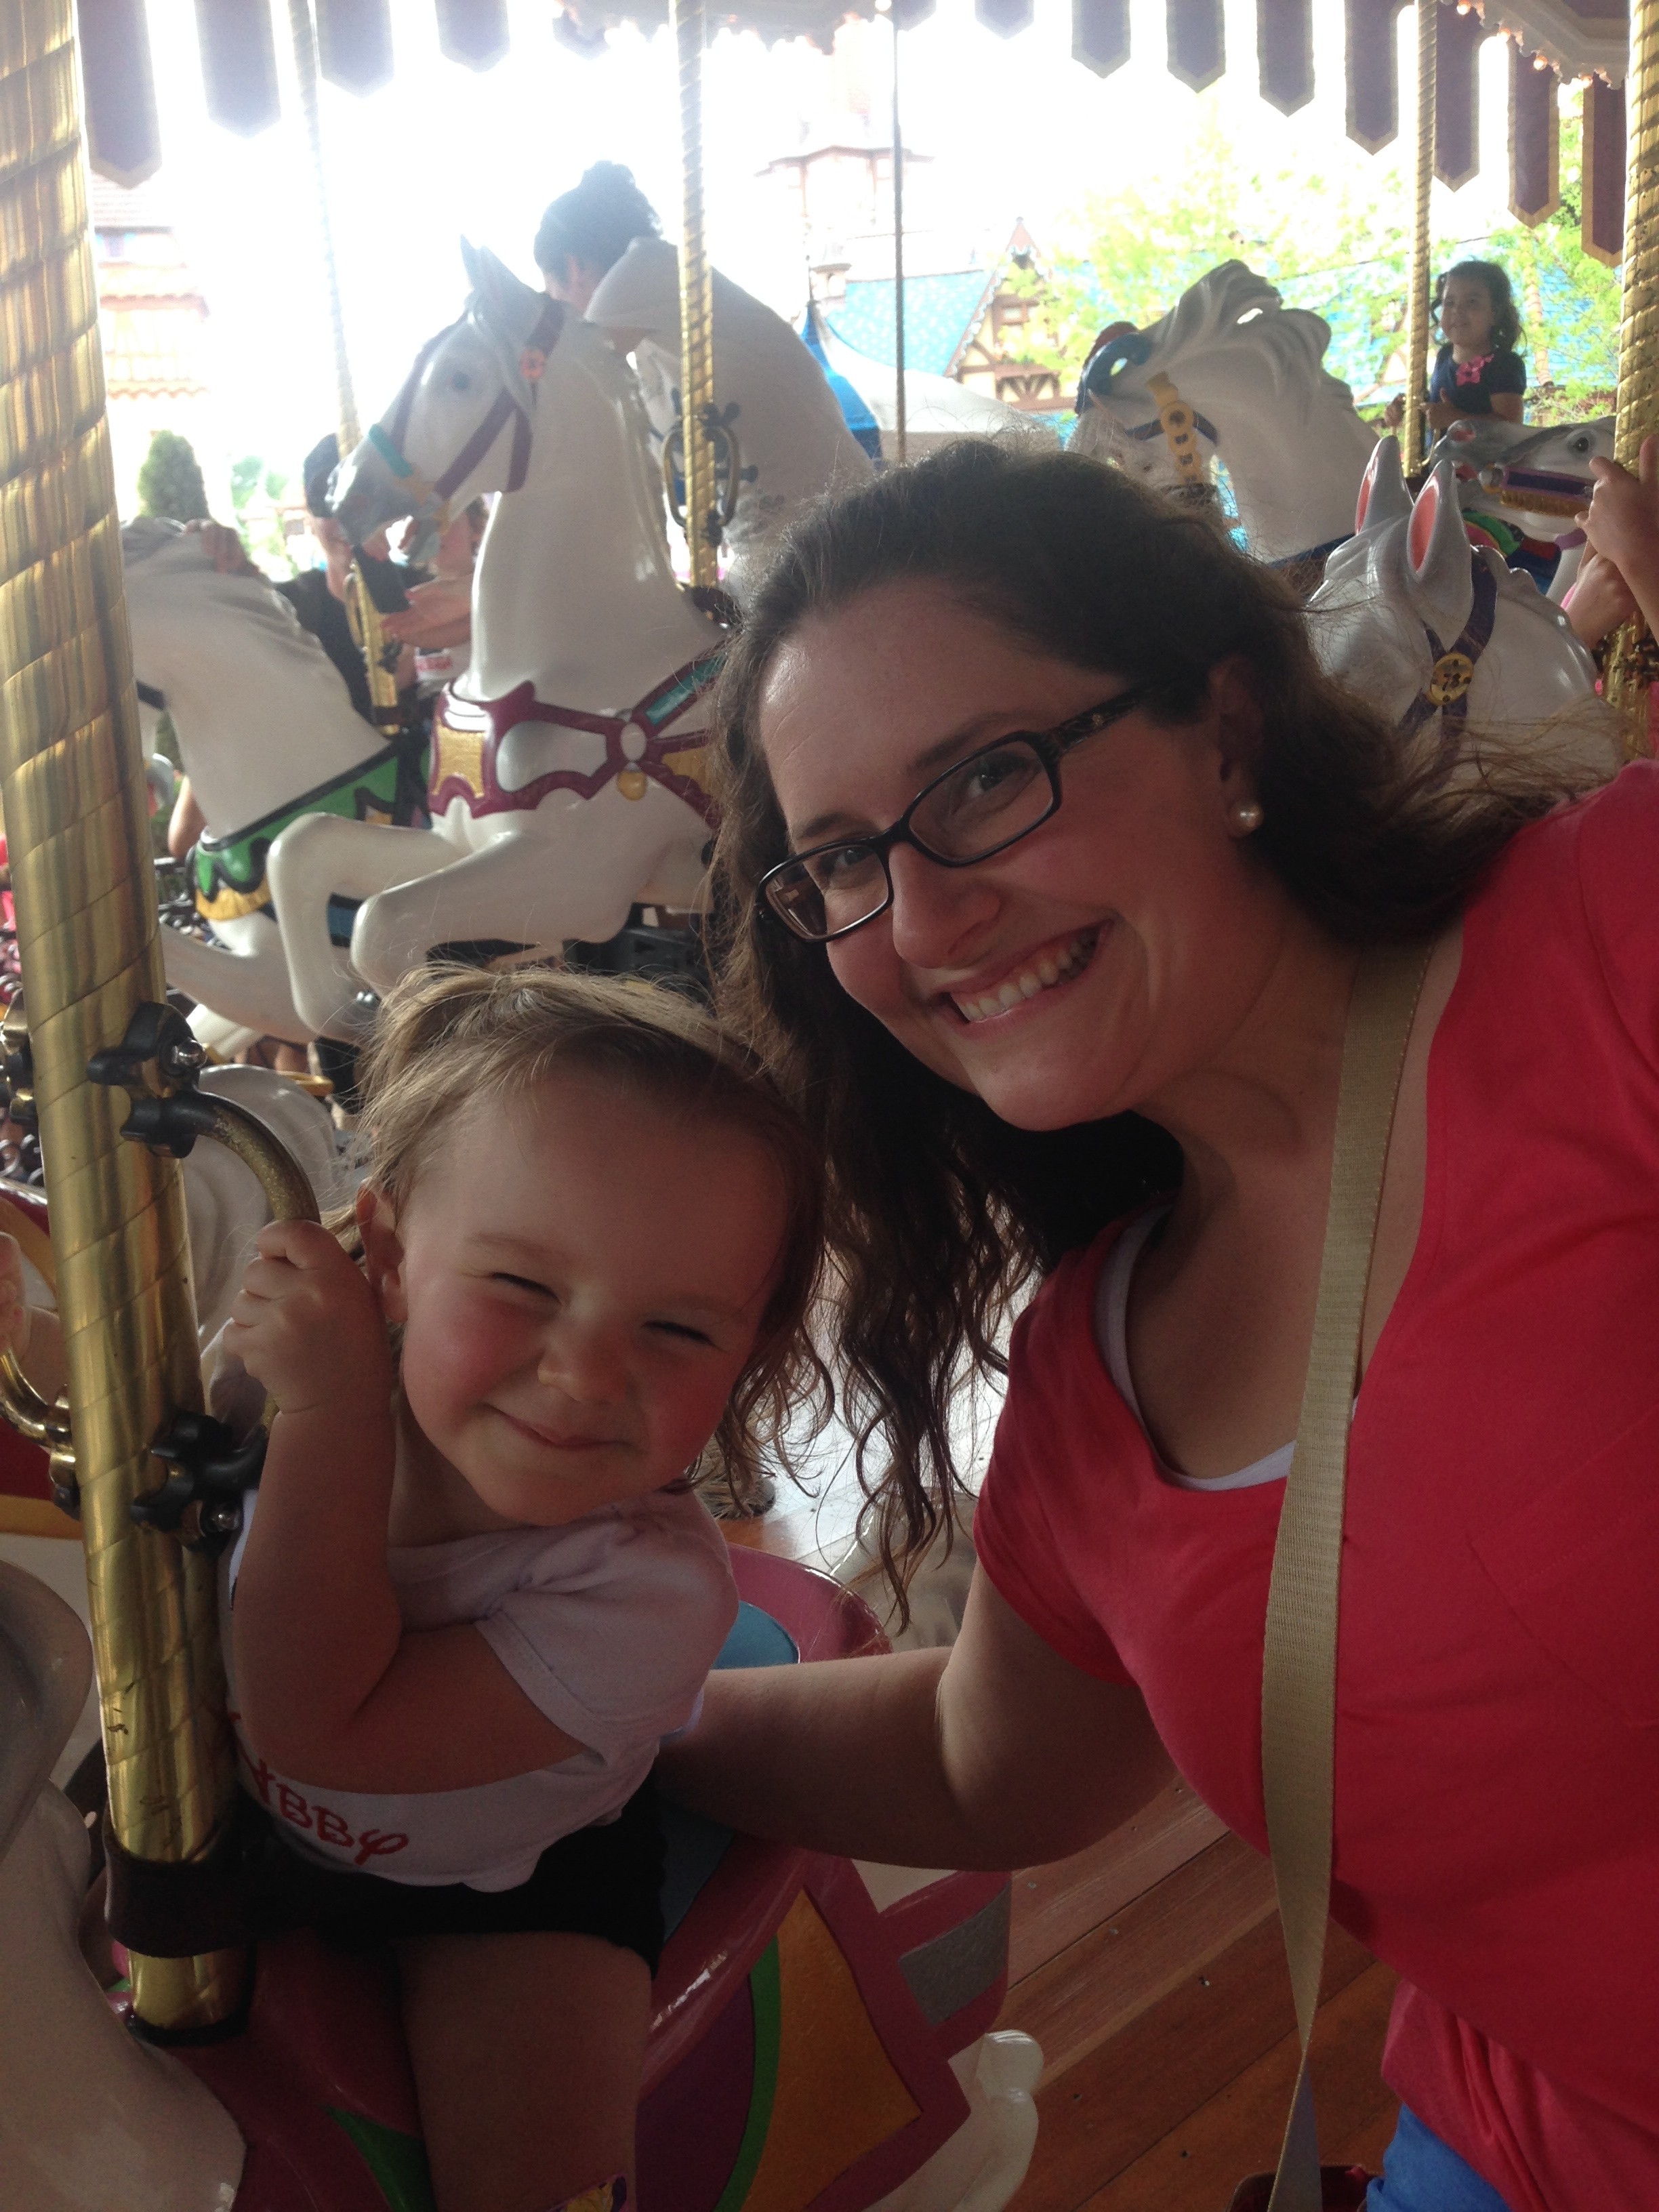 And of course the Carousel is a family favorite. We always ride this more than any other ride. I'm sure I'll be a little sad when it isn't their favorite anymore.